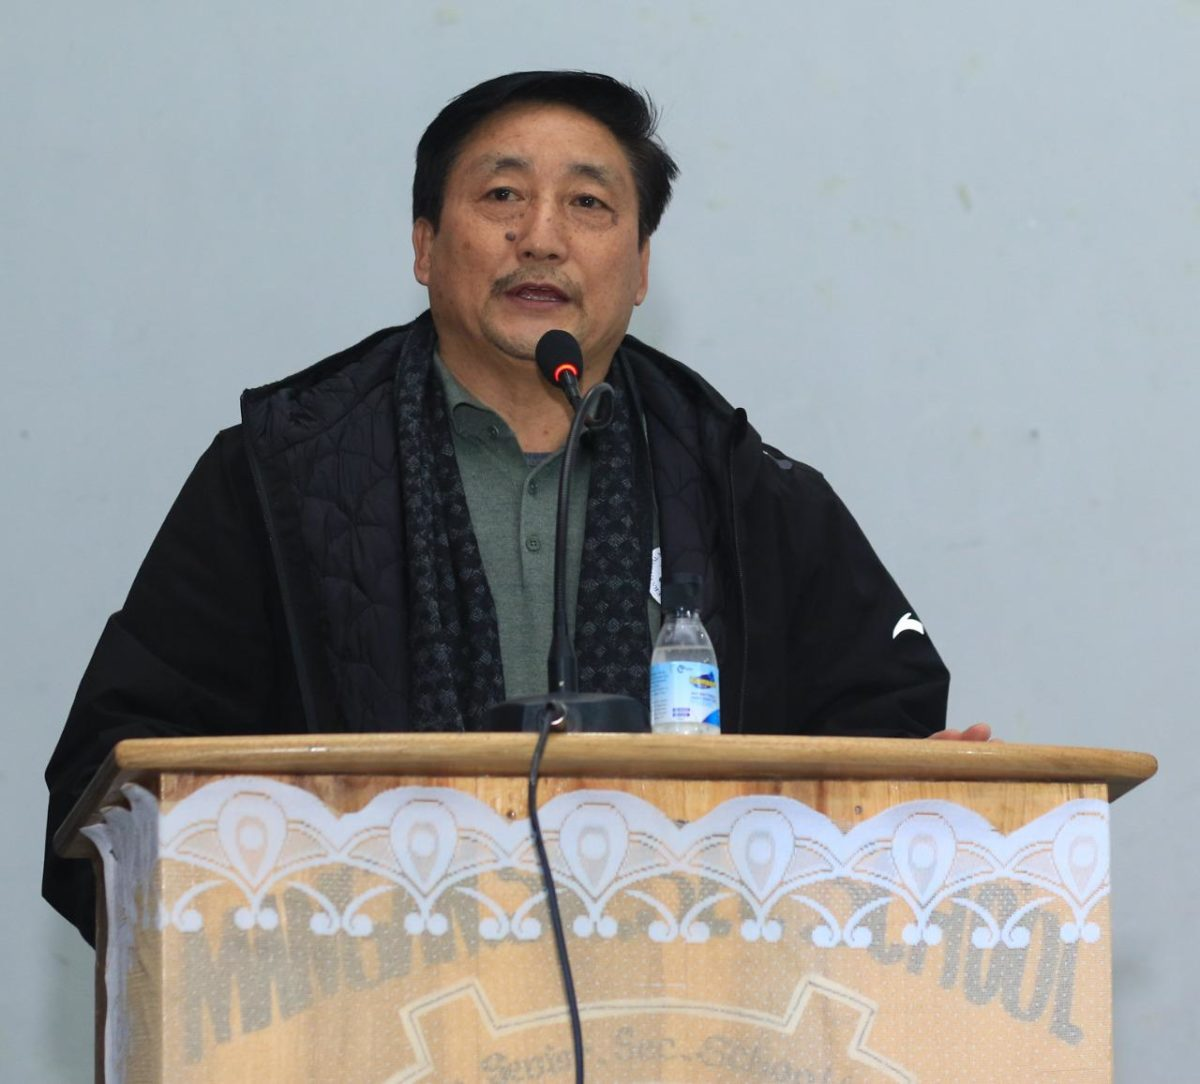 Hon'ble Minister Shri Samdup Lepcha attends International Mountain Day at Mangan